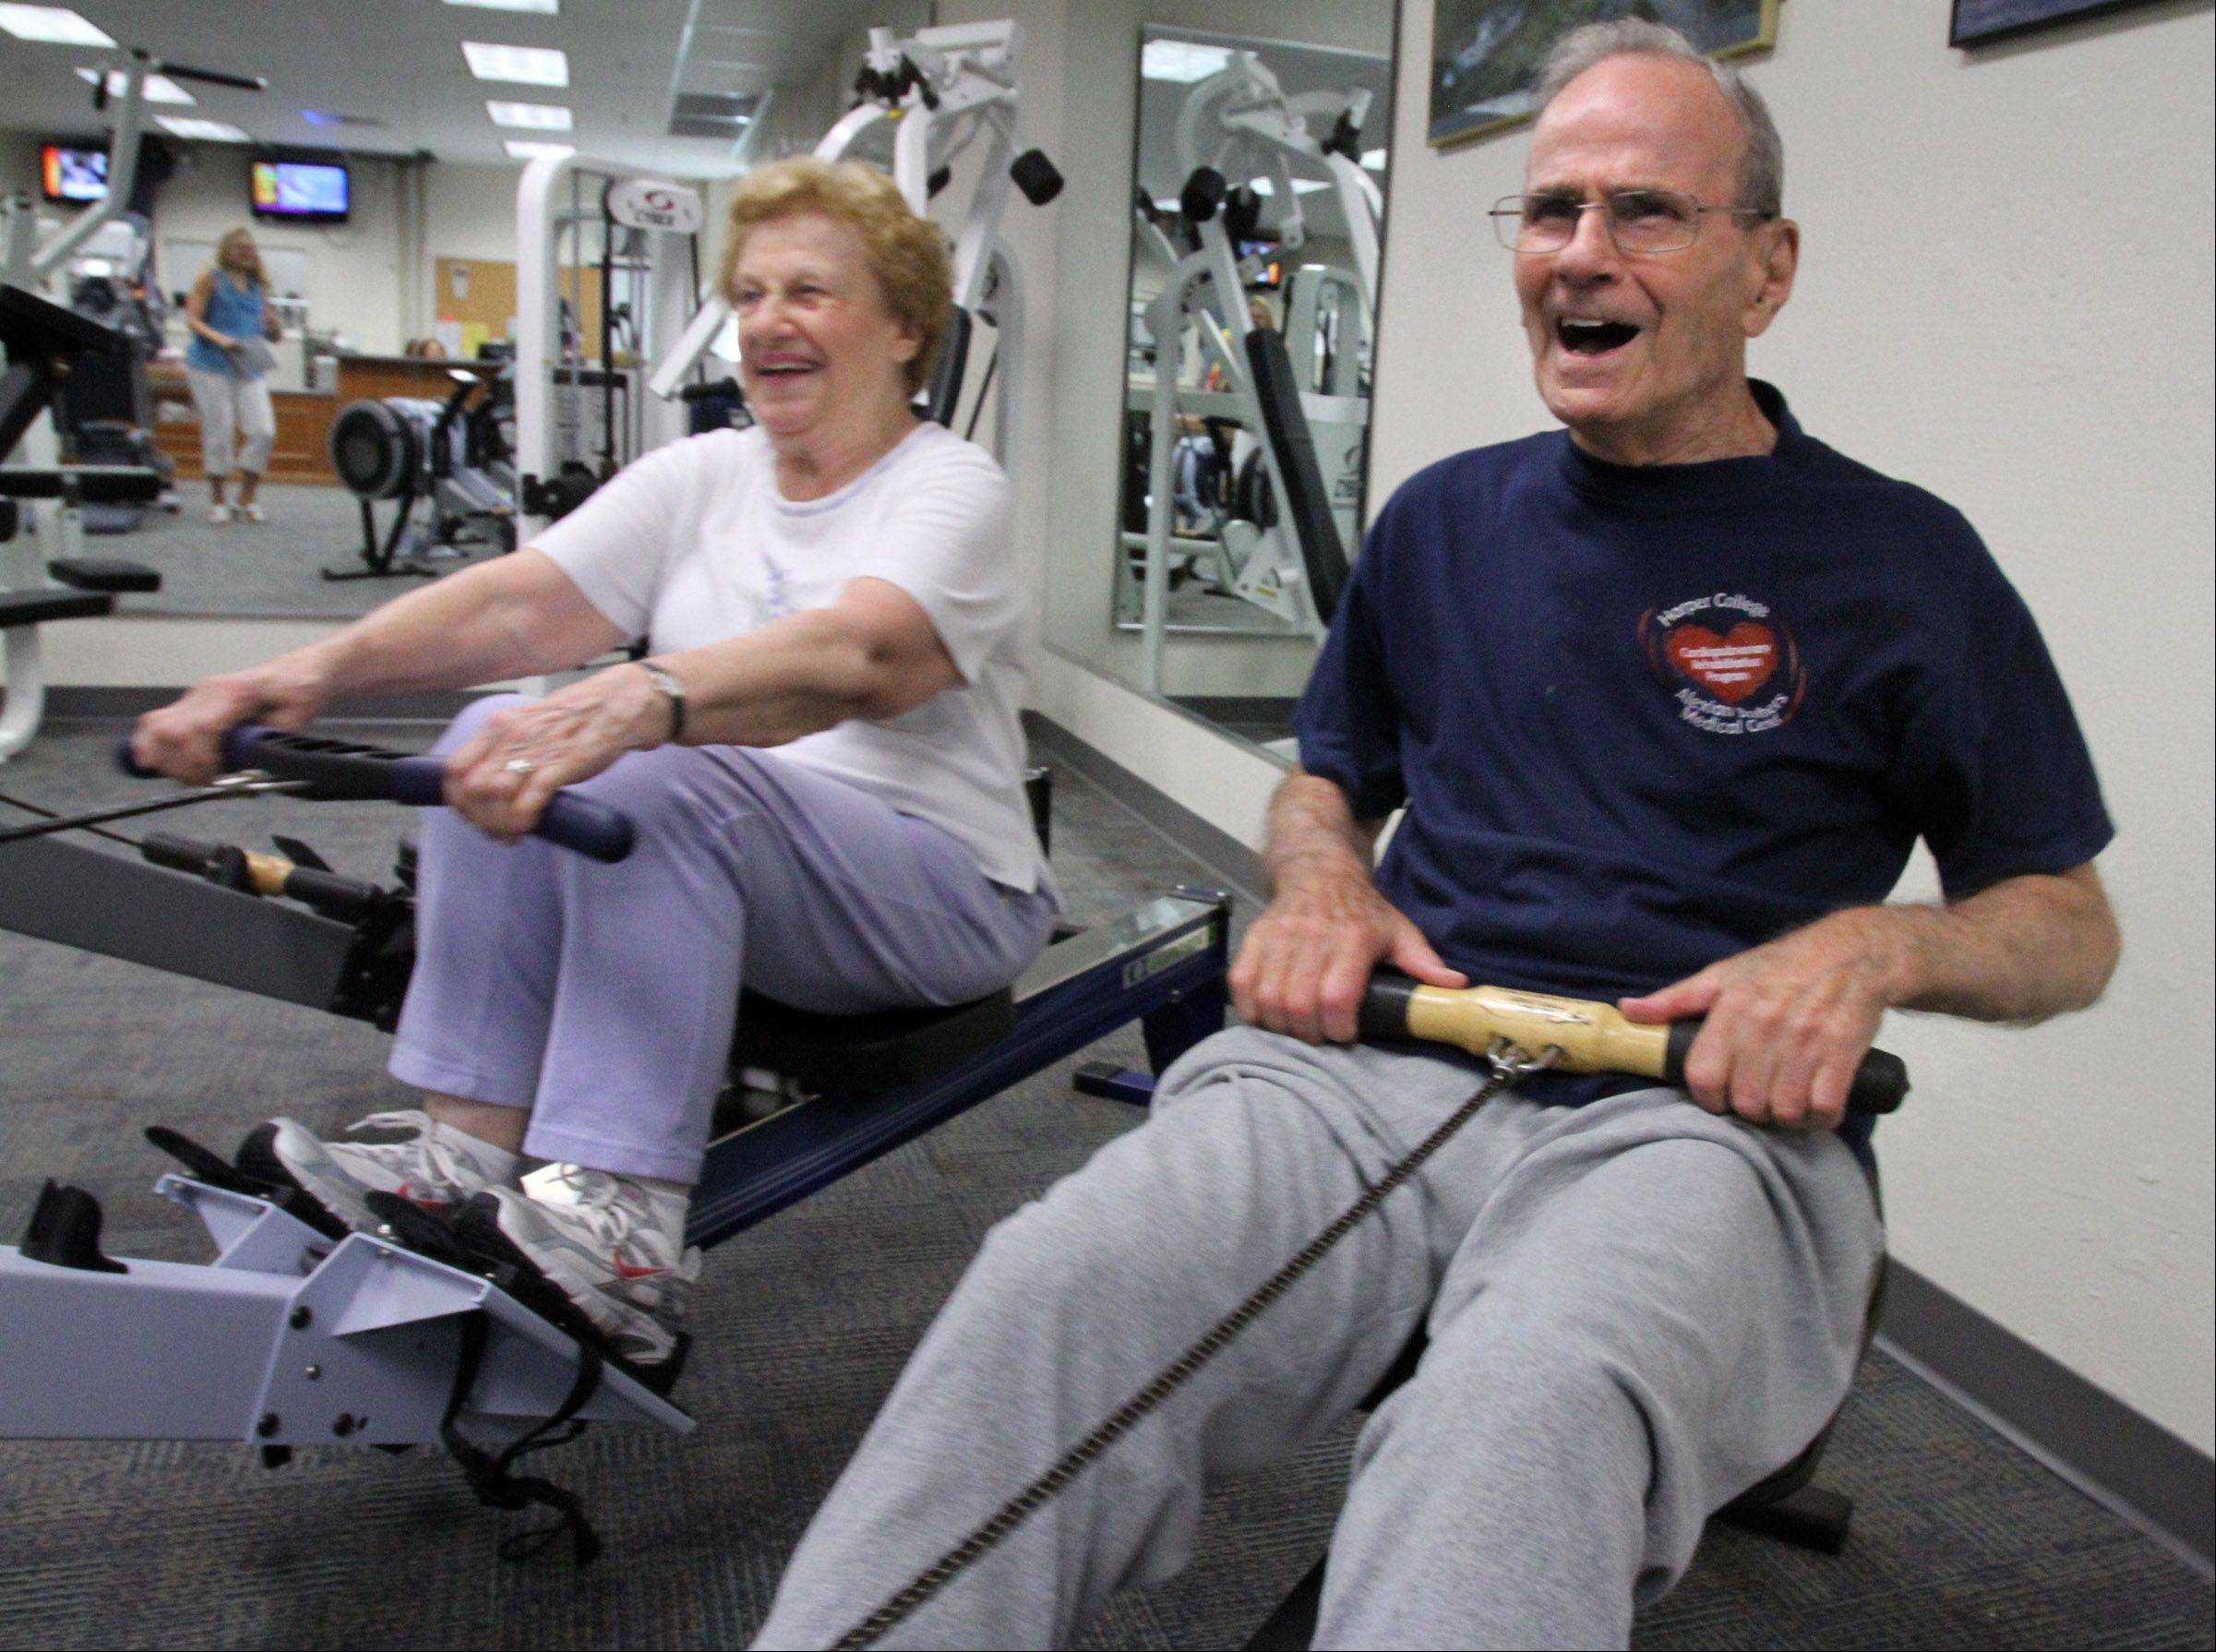 Sam Greco, 90, and Bess Greco, 85, of Palatine, exercise on the rowing machine at the Fitness Center at Harper College.